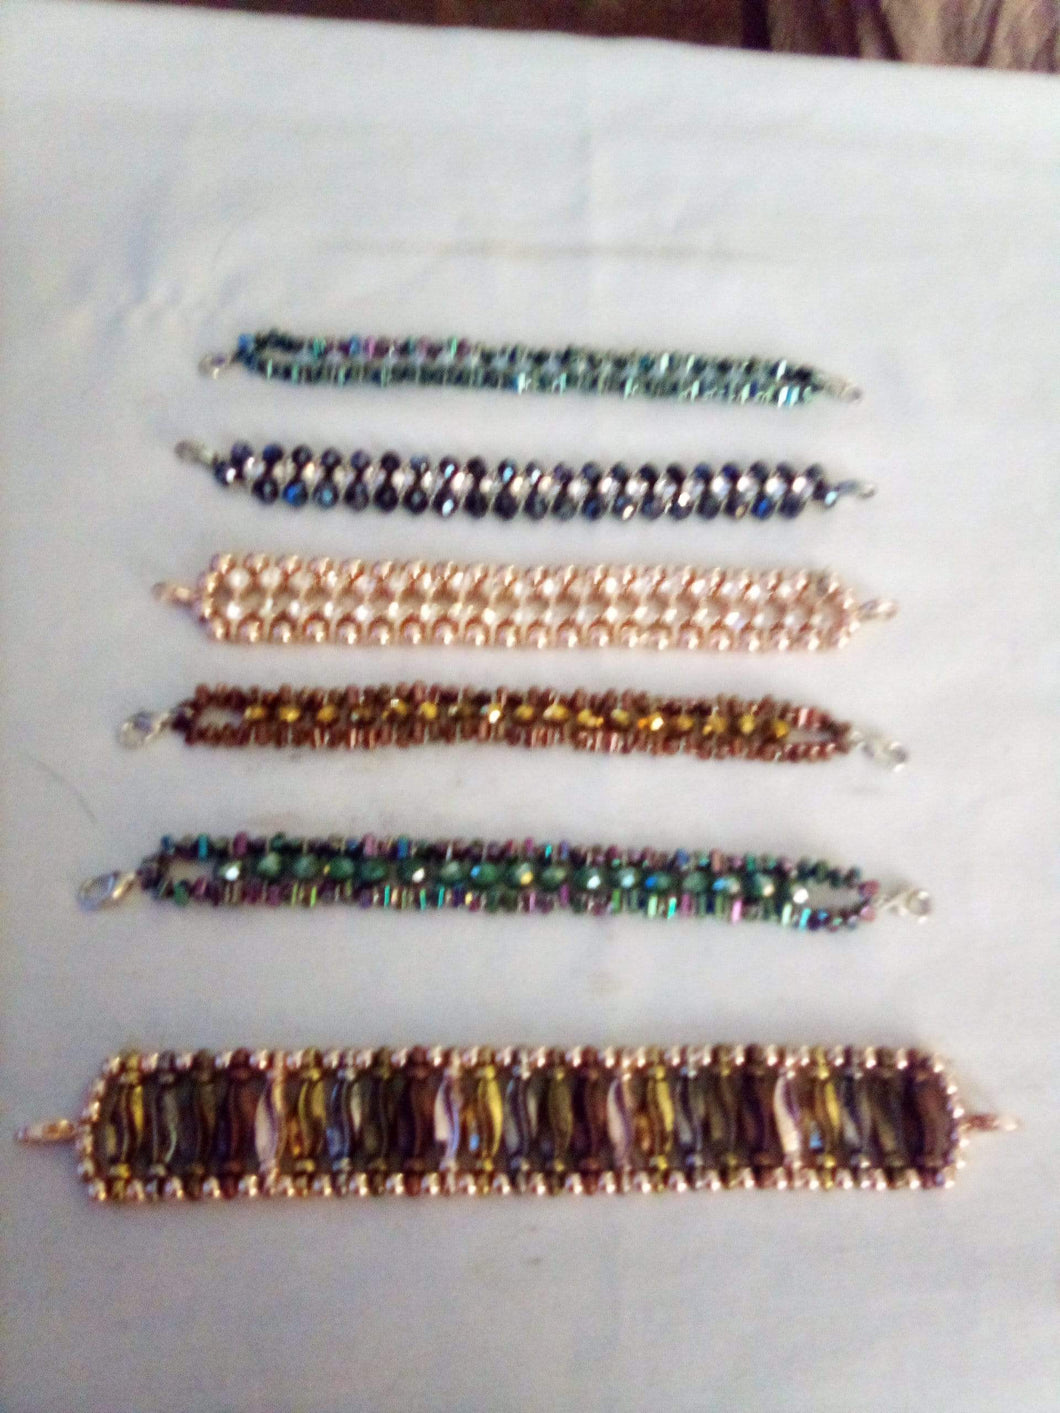 Nice handmade bracelet lot - B&P'sringsnthings